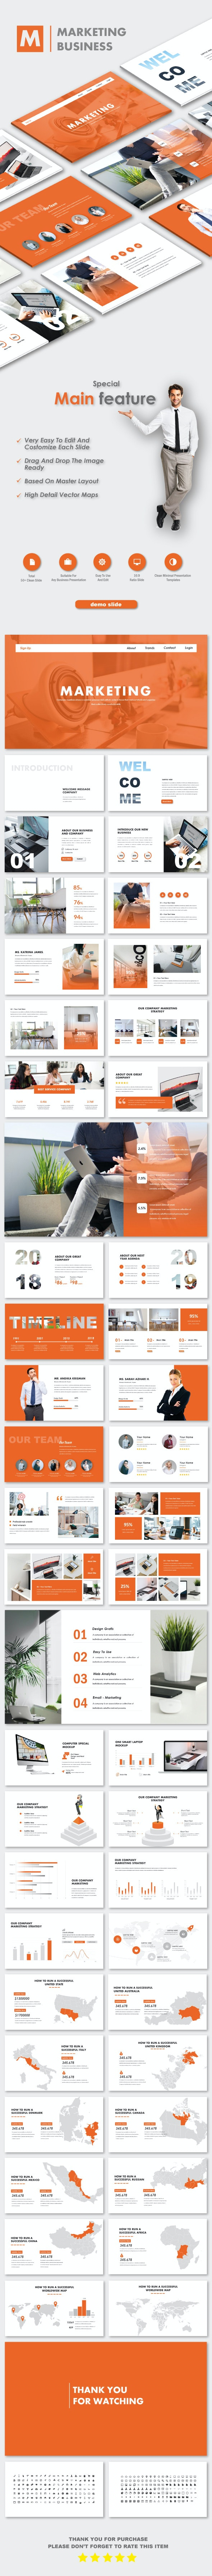 Marketing Business PowerPoint Templates - Business PowerPoint Templates